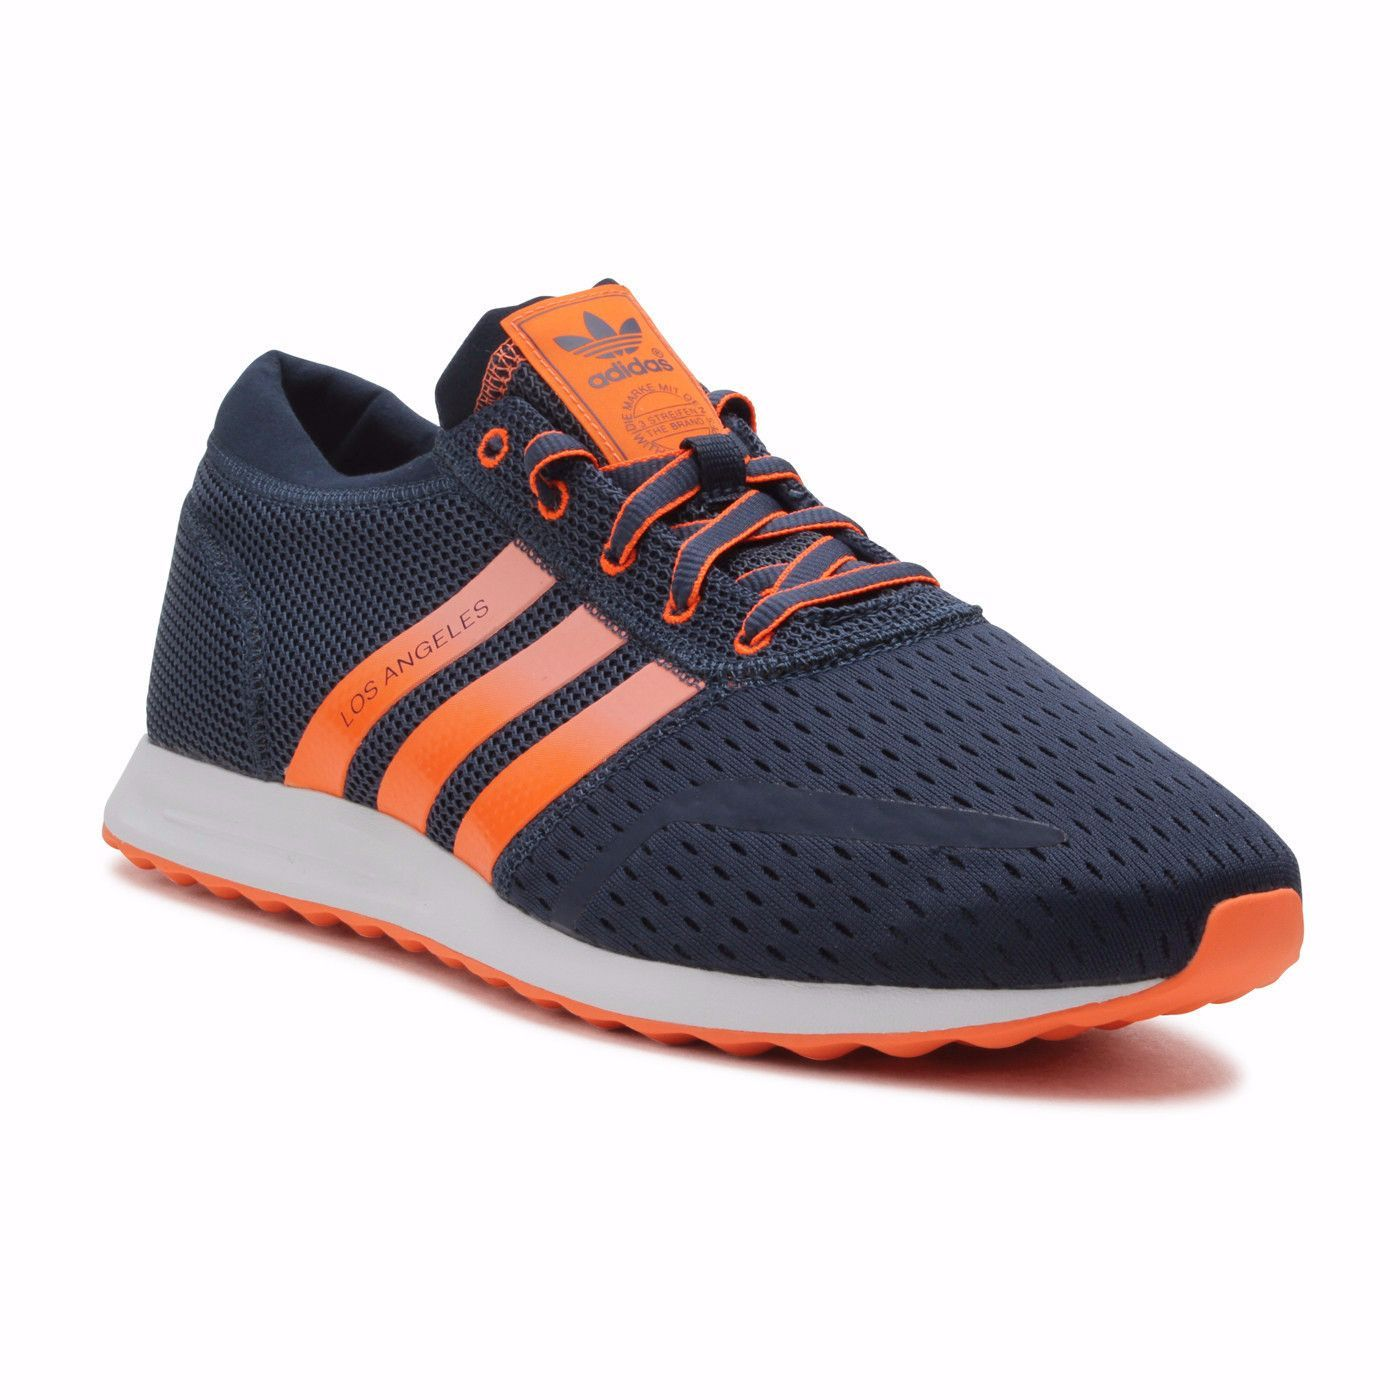 low priced 672d2 0c3d6 Adidas Los Angeles - S79031